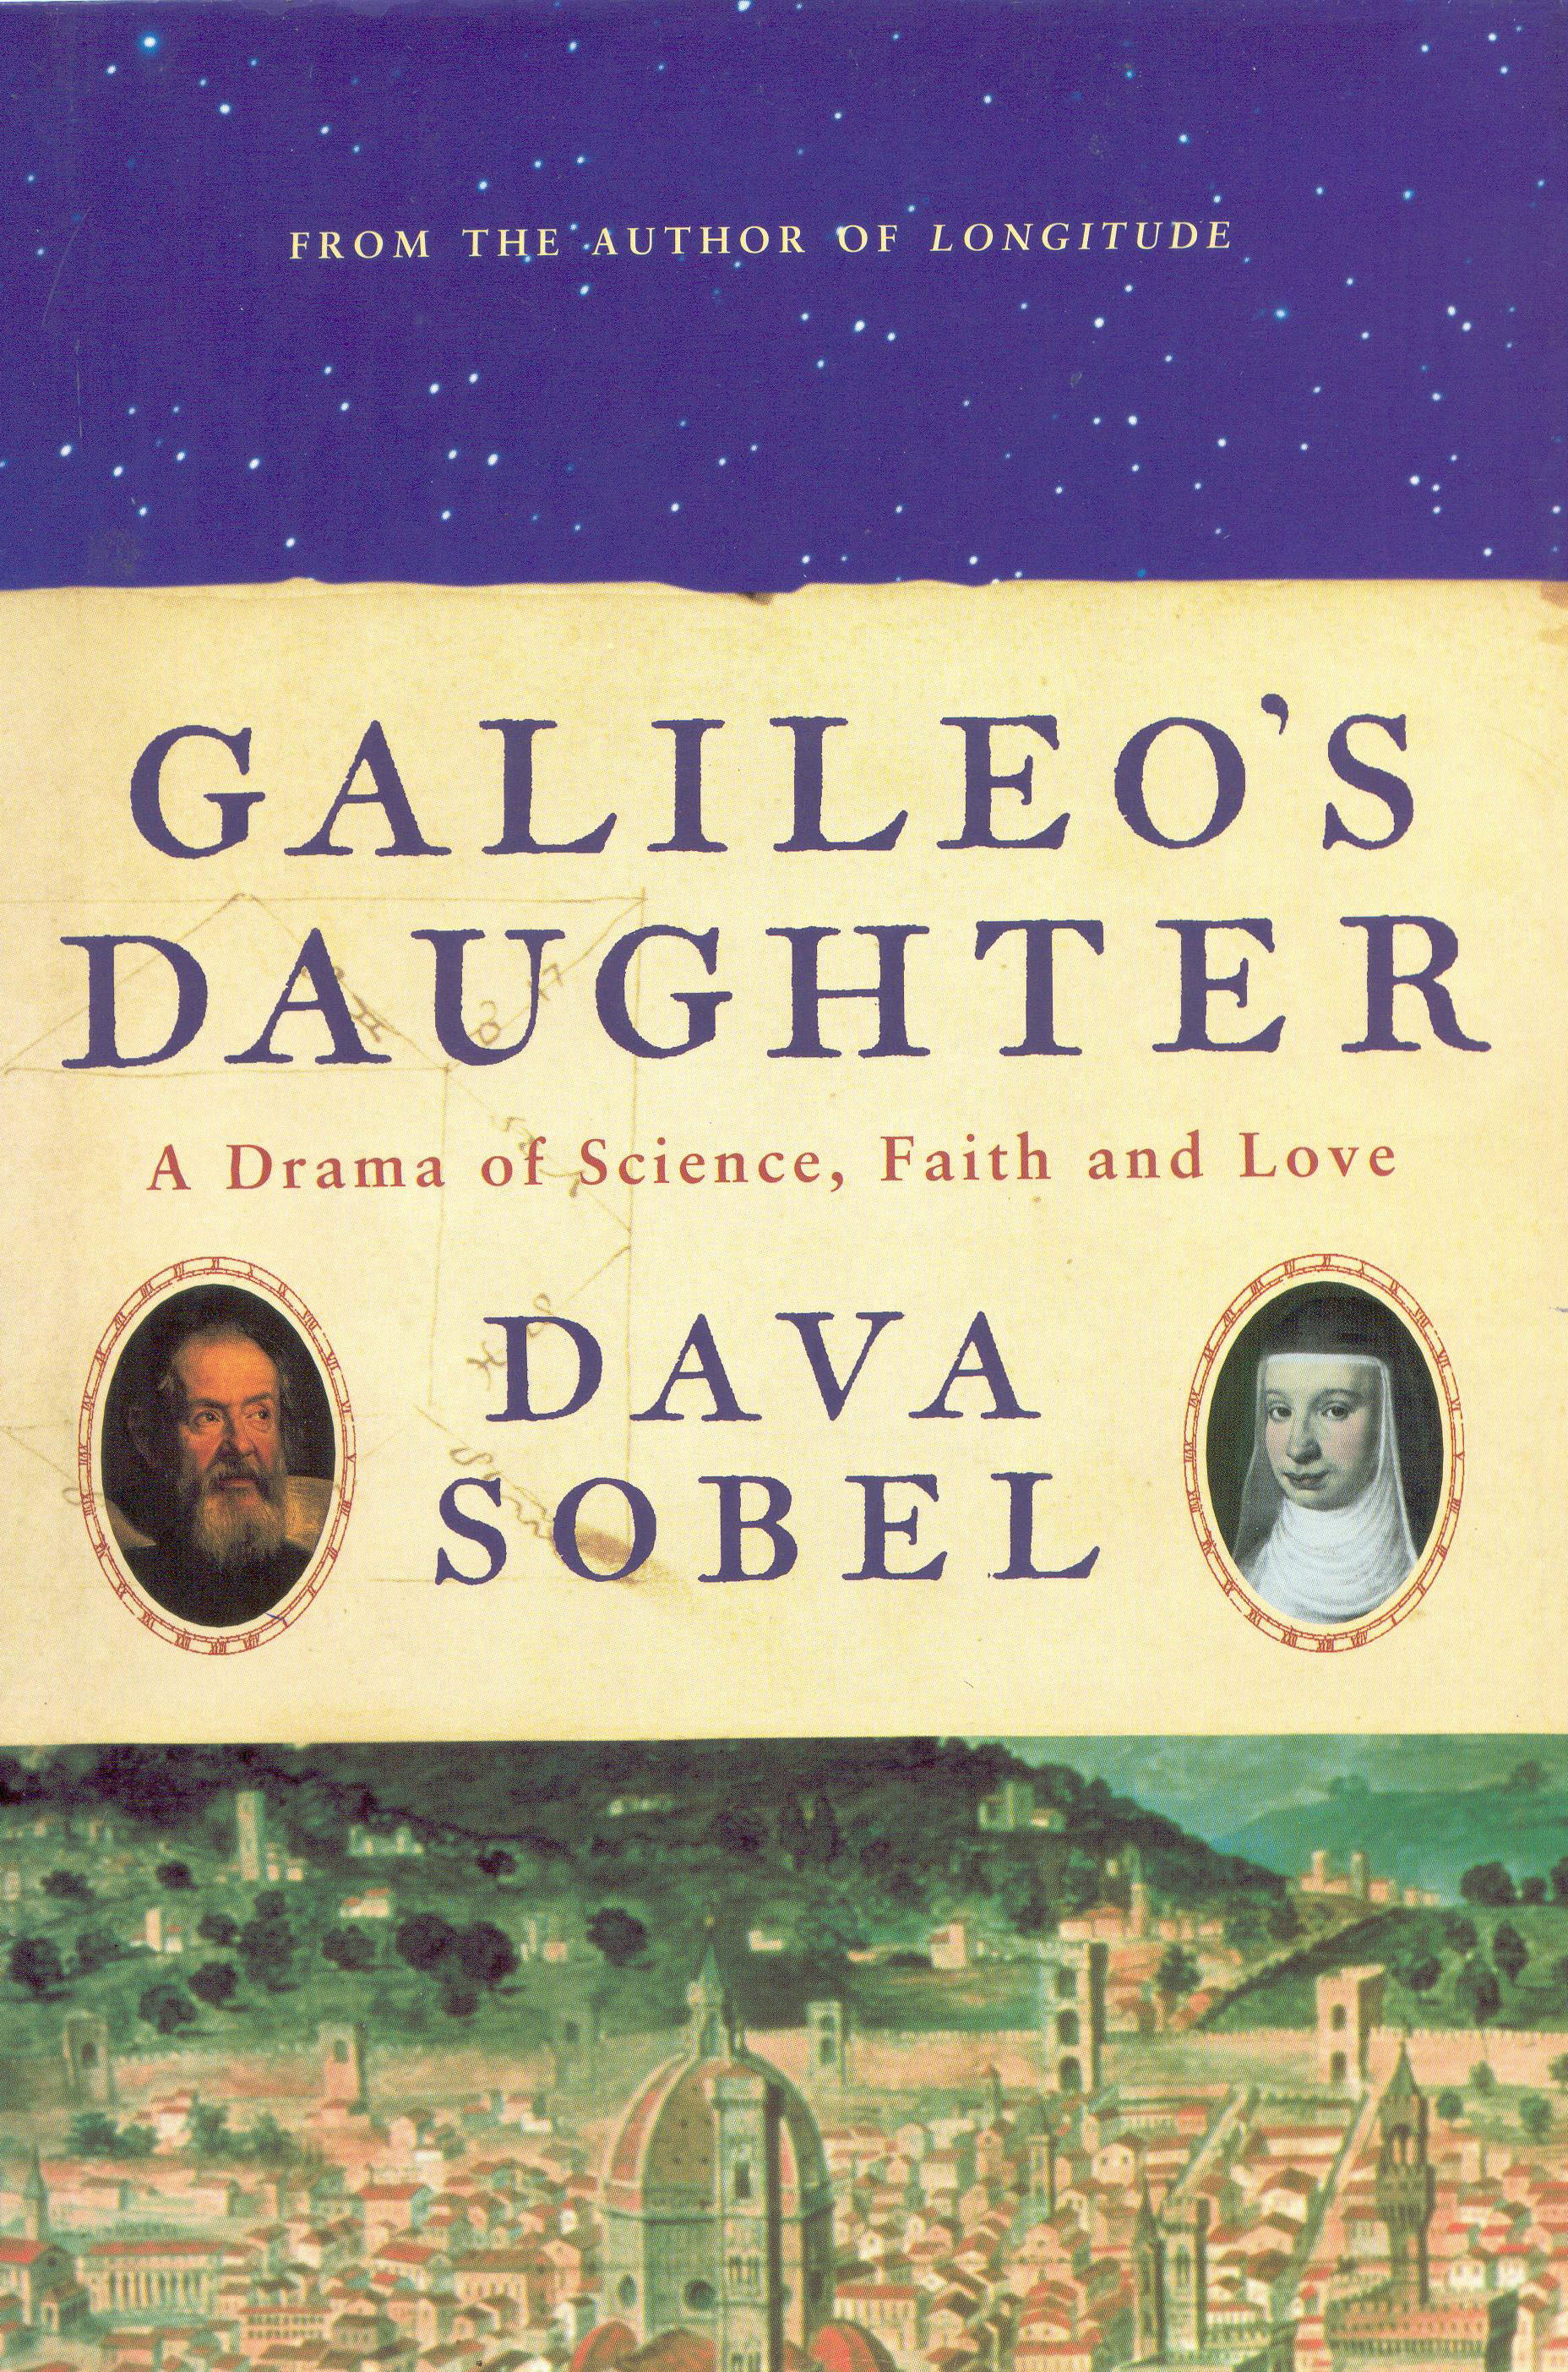 galileos daughter by dava sobel essay It contains an essay called on keeping a notebook  plus exploring diaries, journals and faction works of  galileo's daughter by dava sobel.